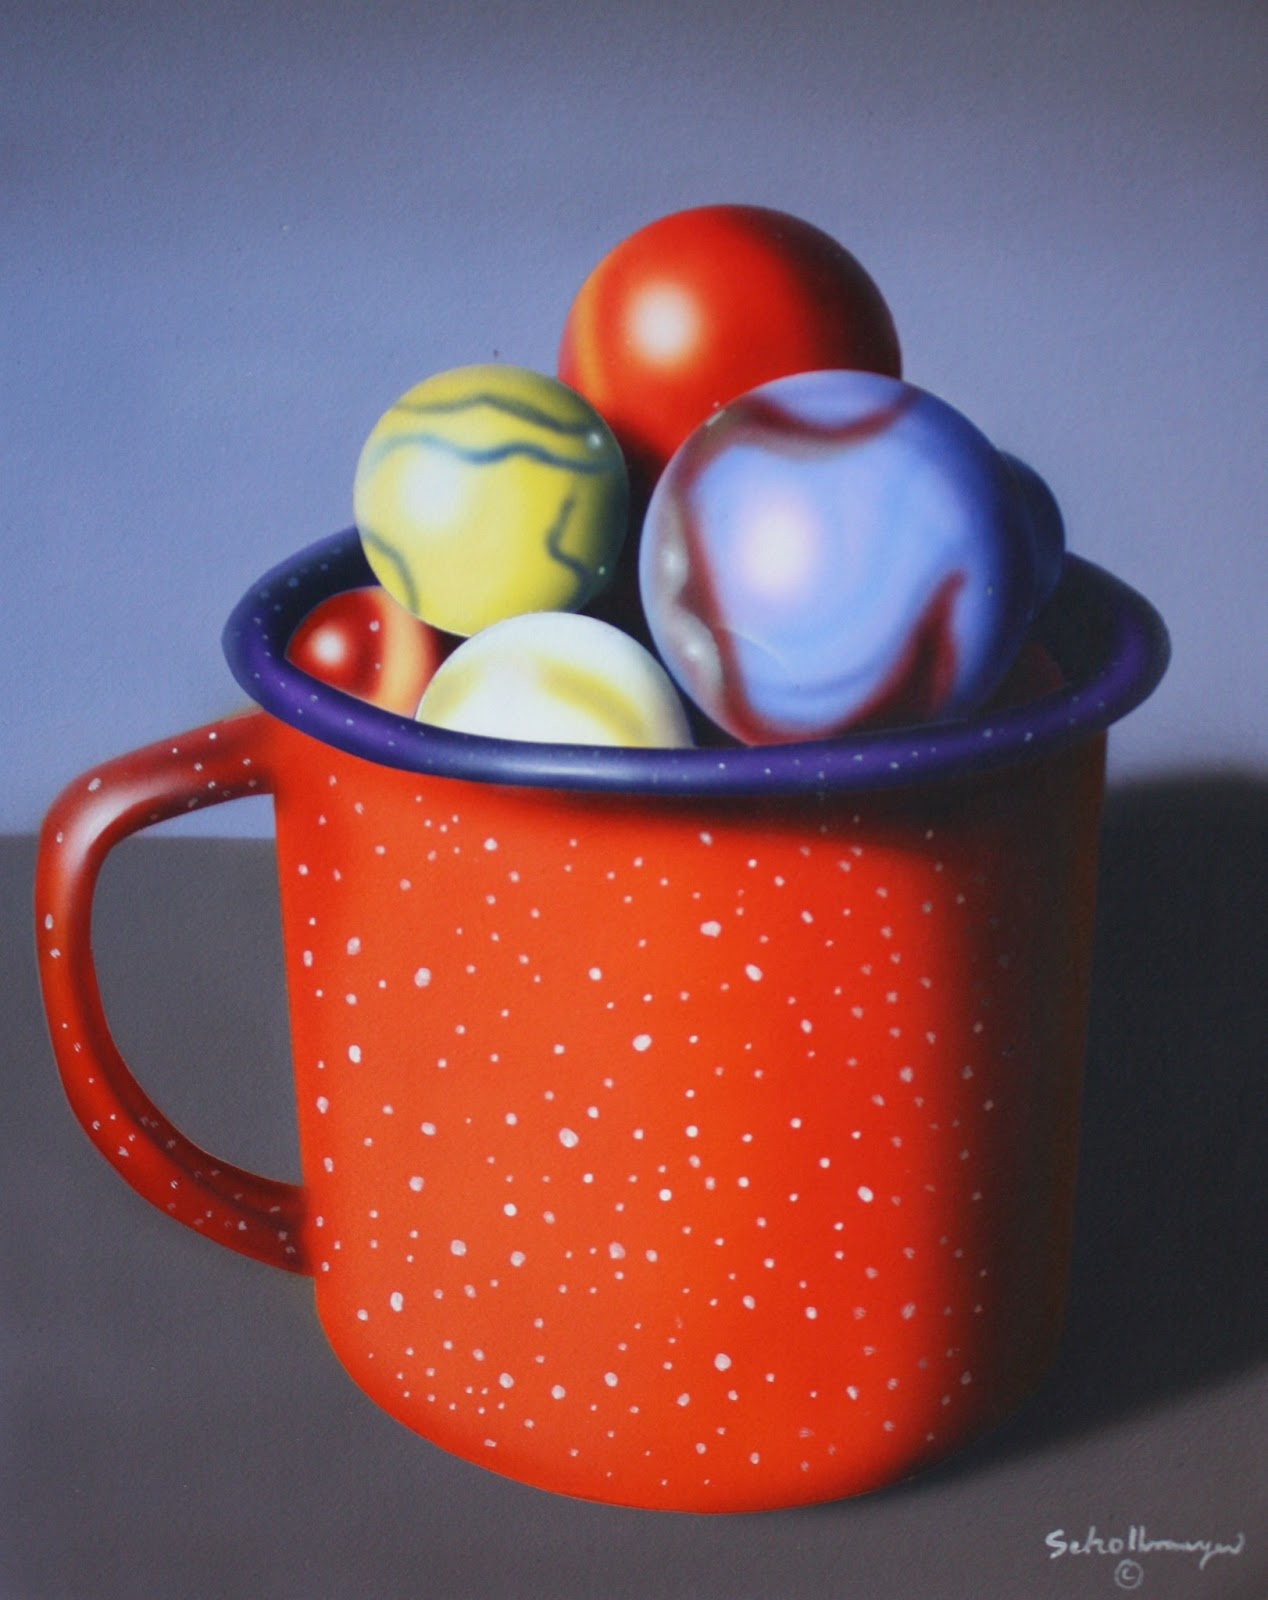 A Marble In A Cup Of Honey : Fred schollmeyer granite cup and marbles